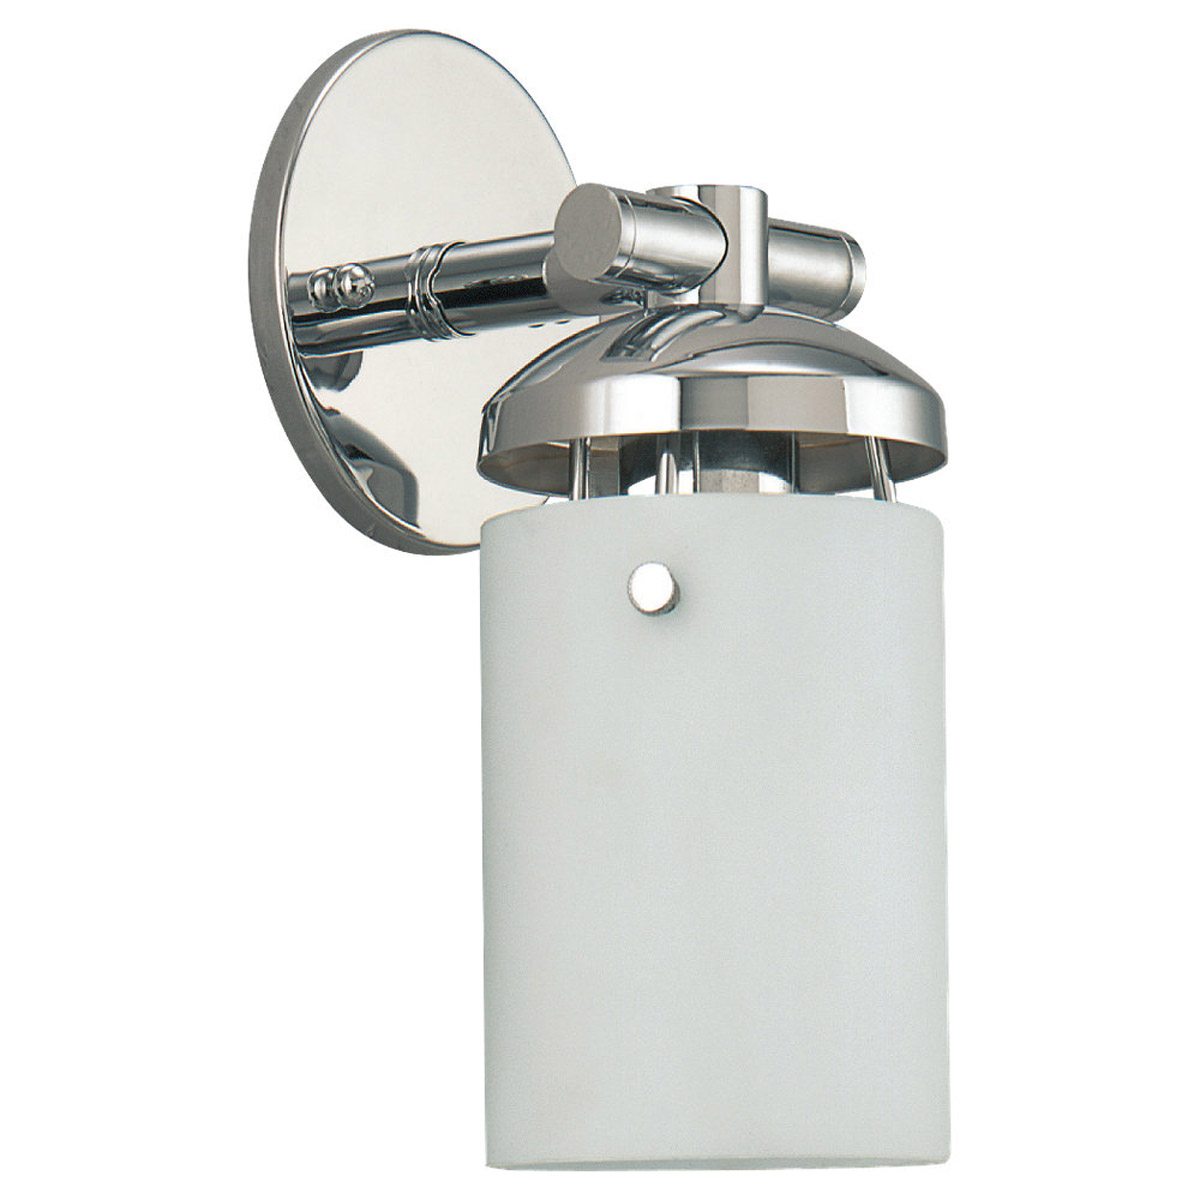 Sea Gull Lighting Bliss 1 Light Bath Vanity in Chrome 41044-05 photo